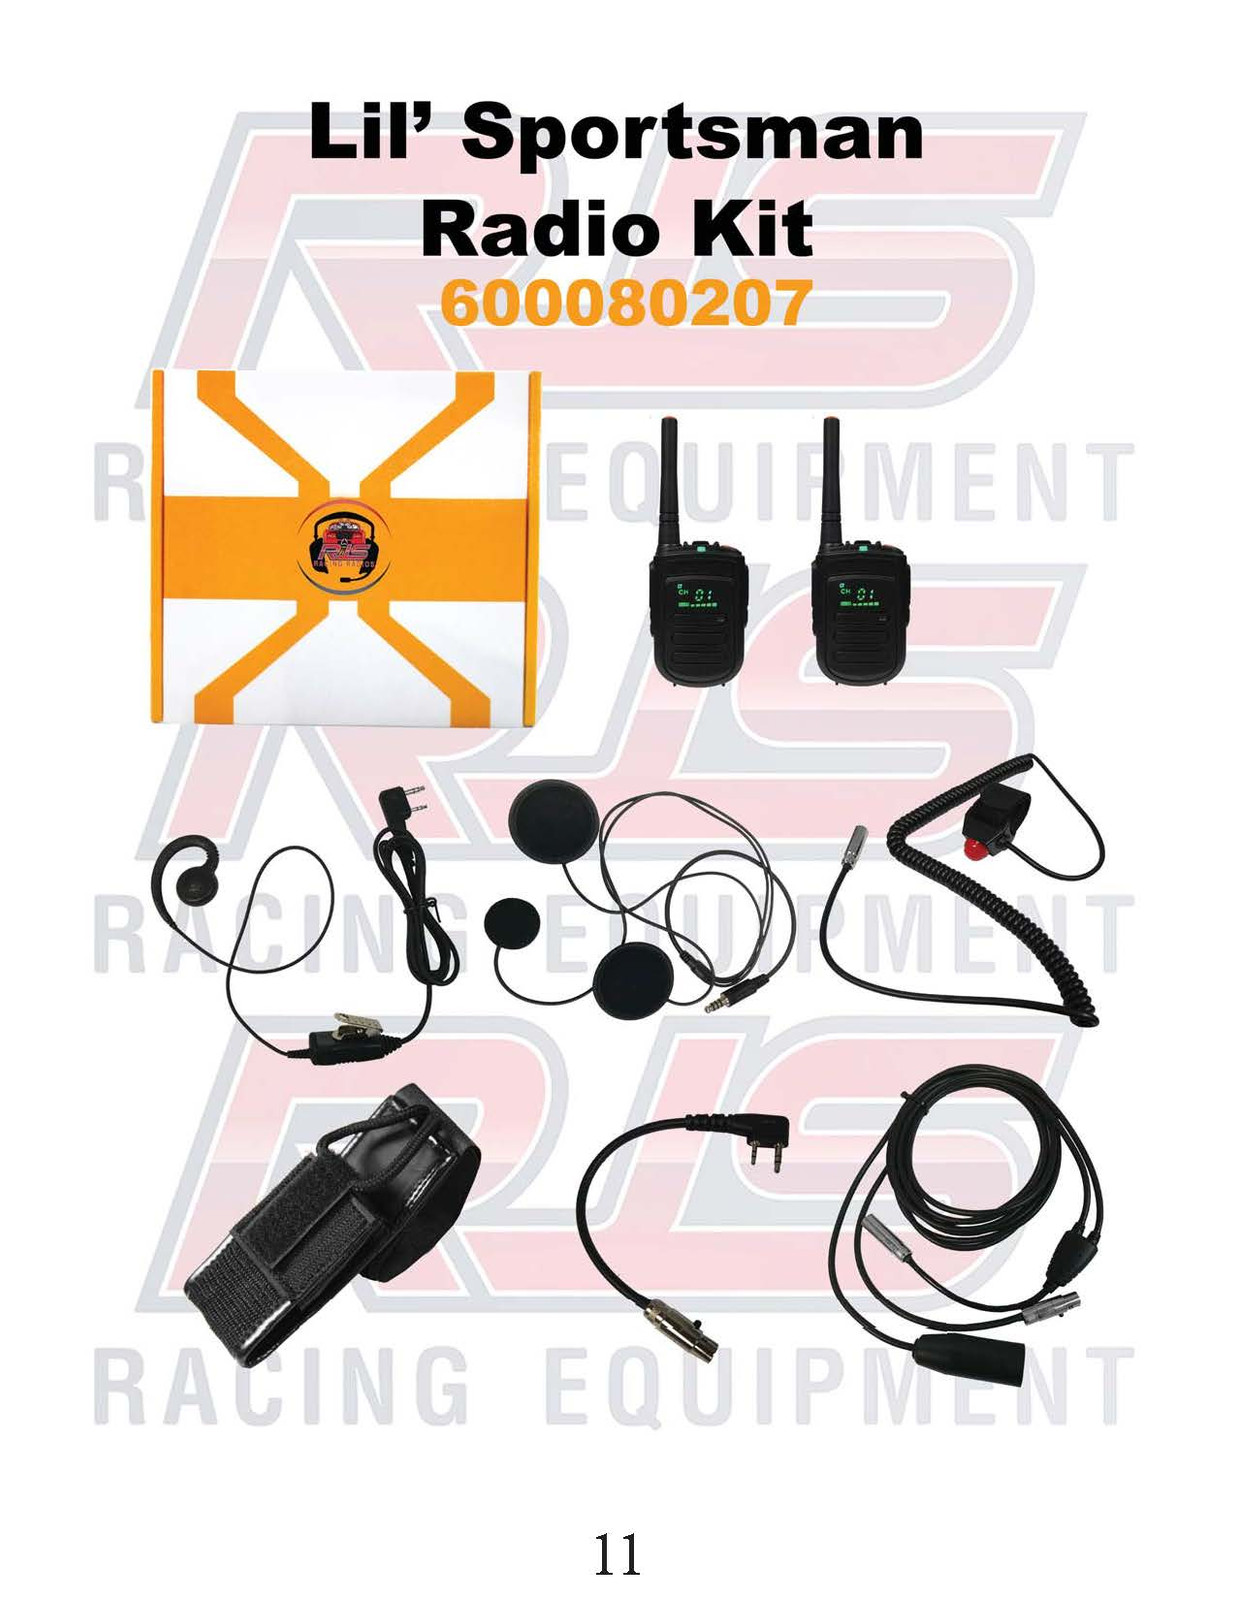 rjs racing equipment on samsung galaxy s4 schematic diagram, cell phone  headset cable diagram,